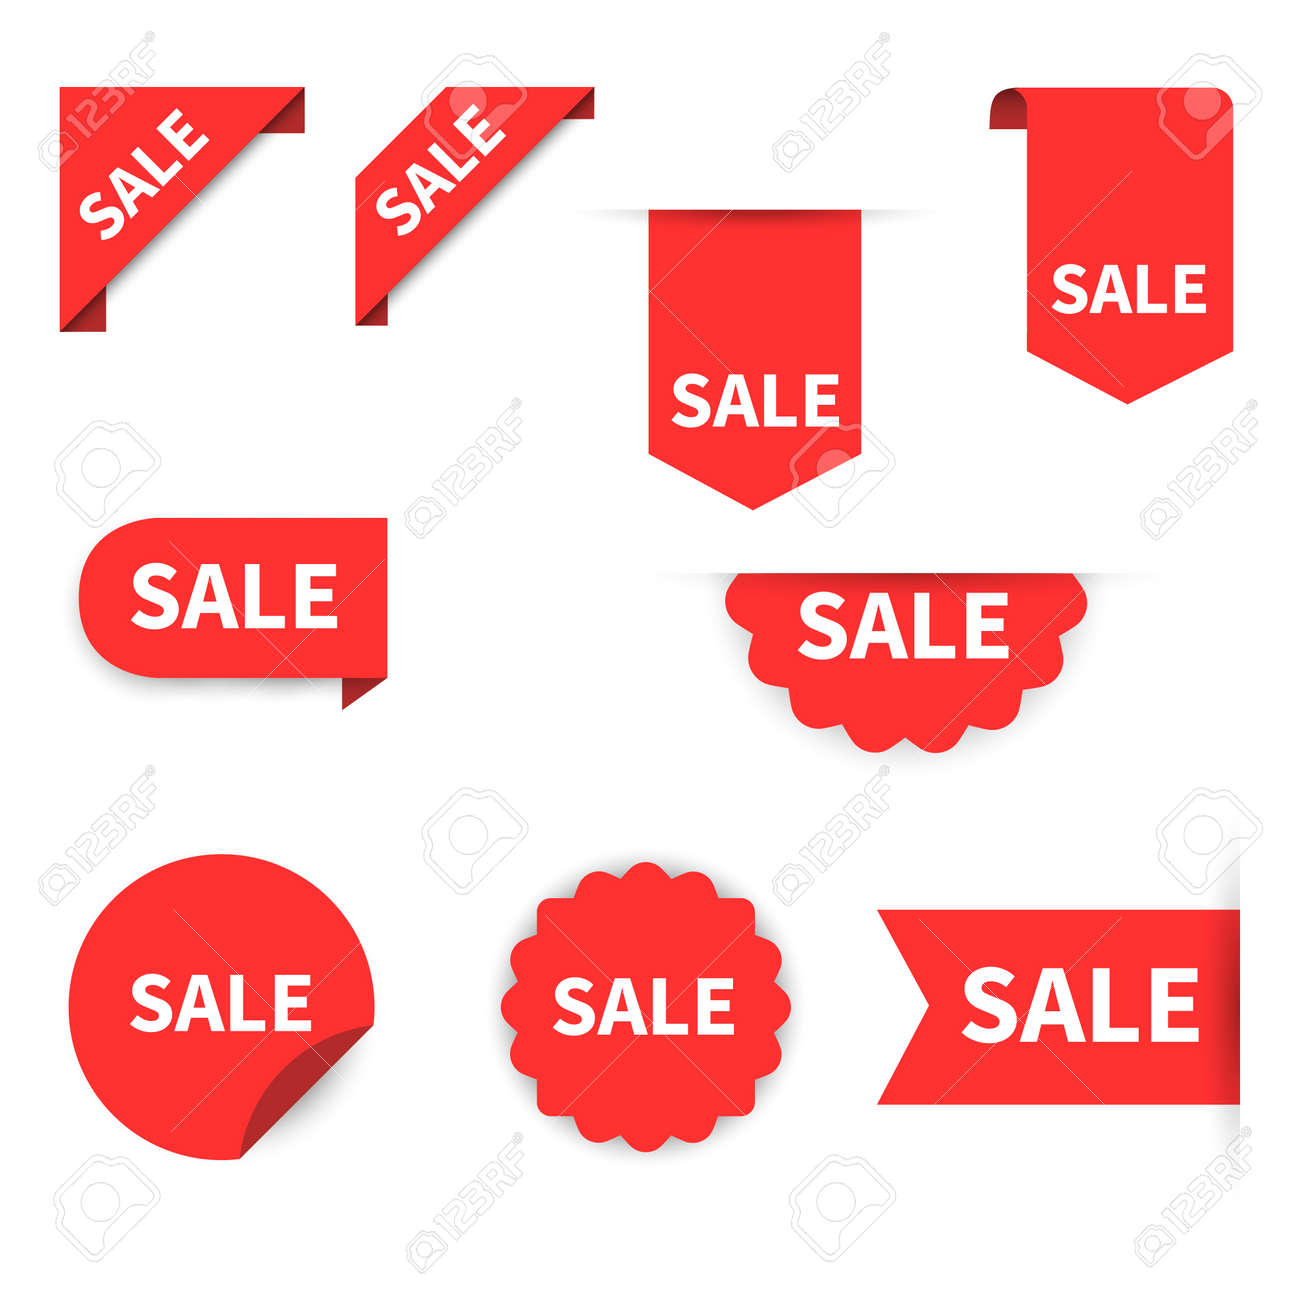 Sale Label collection set. Sale tags. Discount red ribbons, banners and icons. Shopping Tags. Sale icons. Red isolated on white background, vector illustration - 121773535